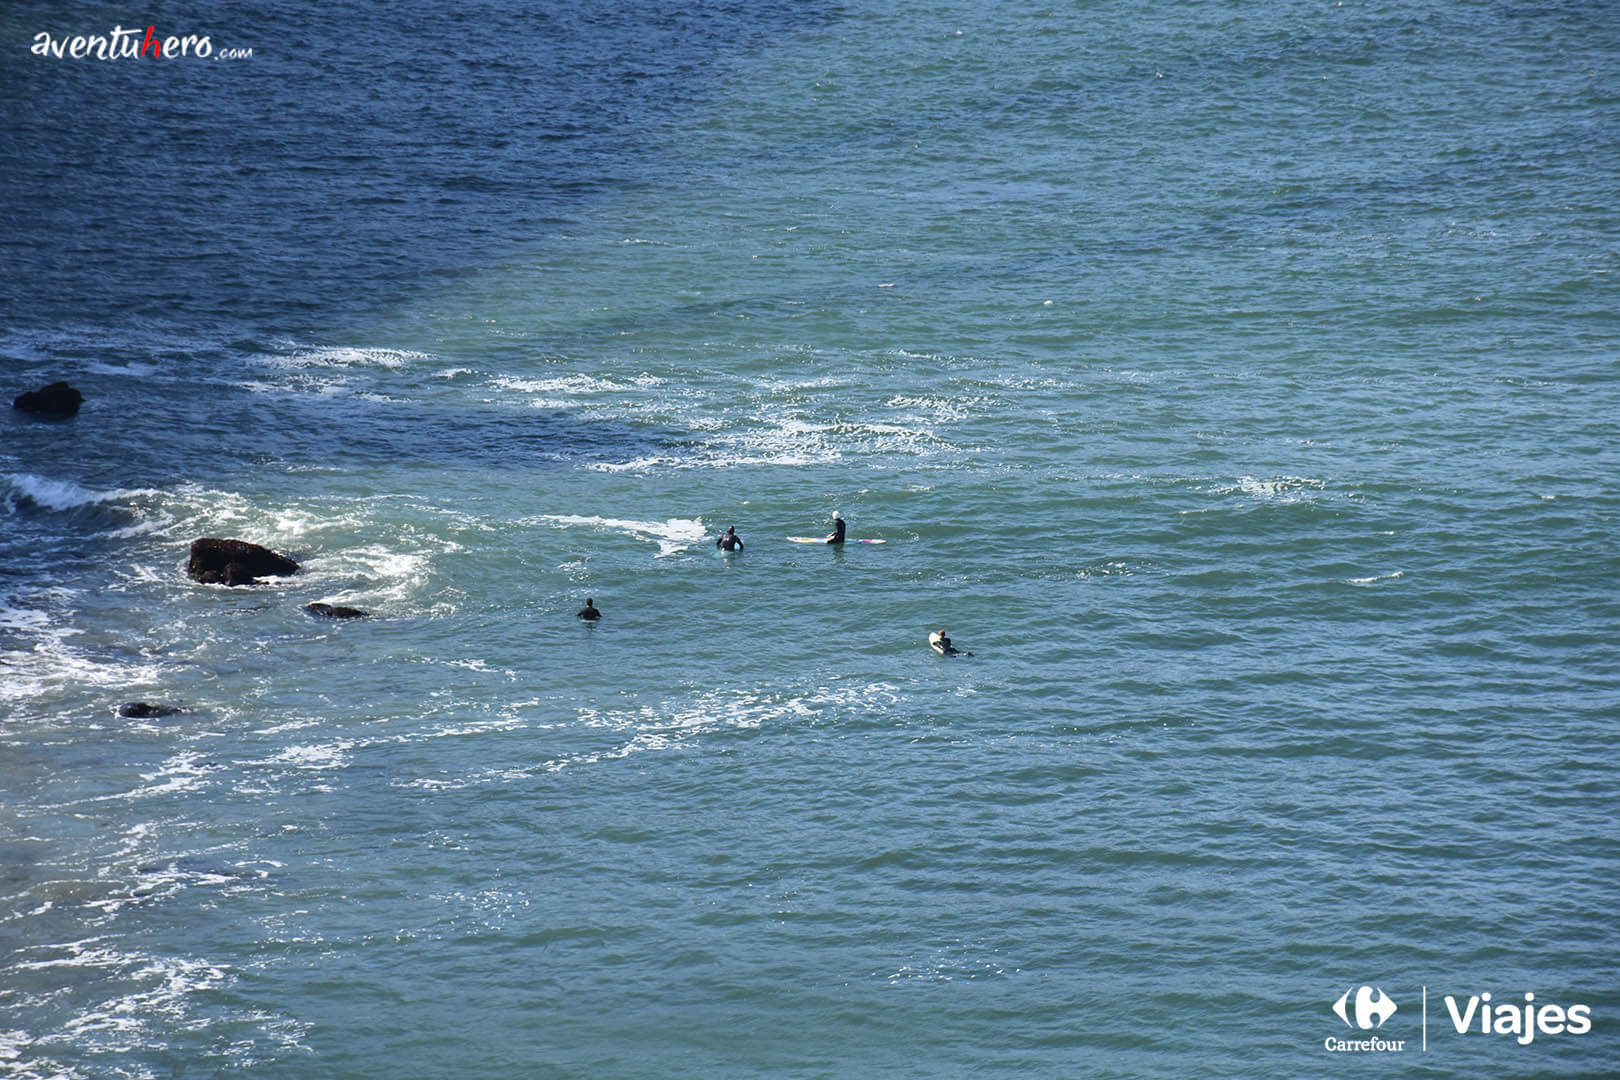 Surferos en Golden Gate